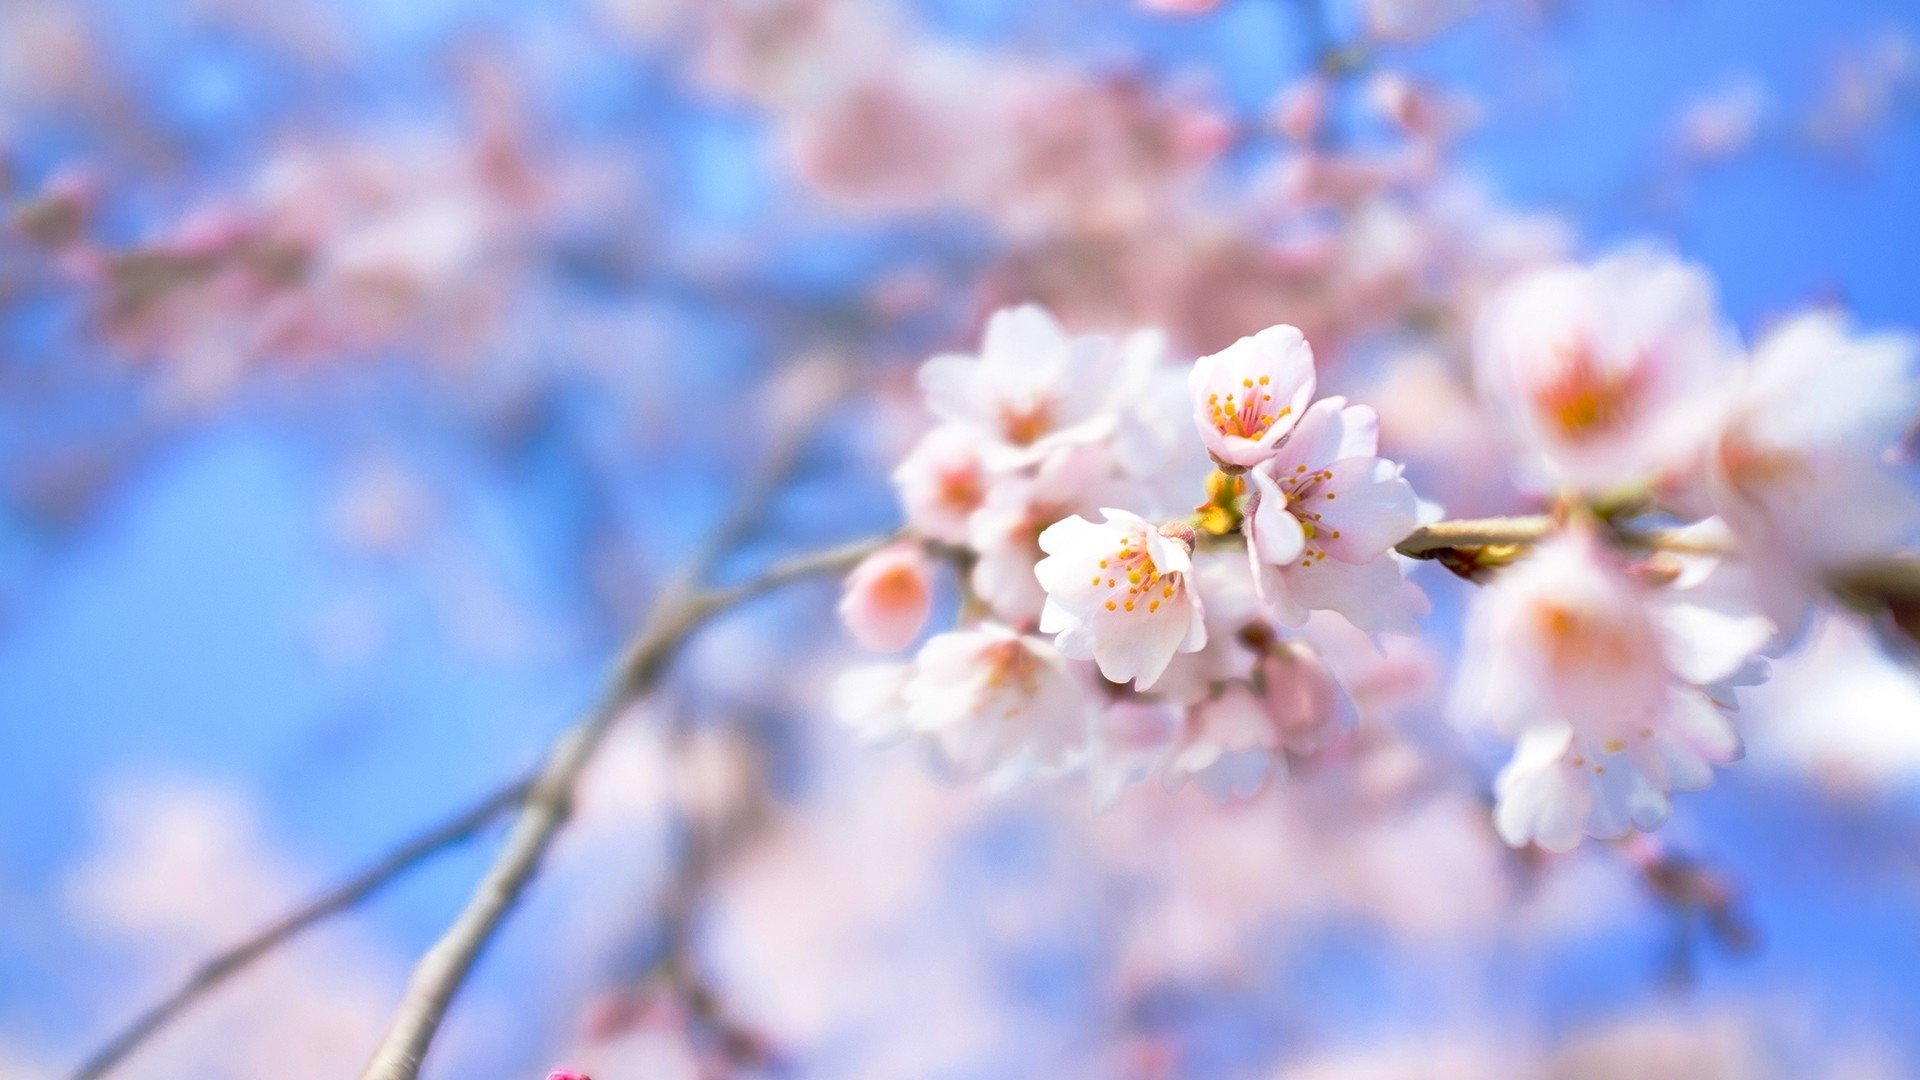 Best Blossom Wallpaper ID332711 For High Resolution Full Hd PC 1920x1080